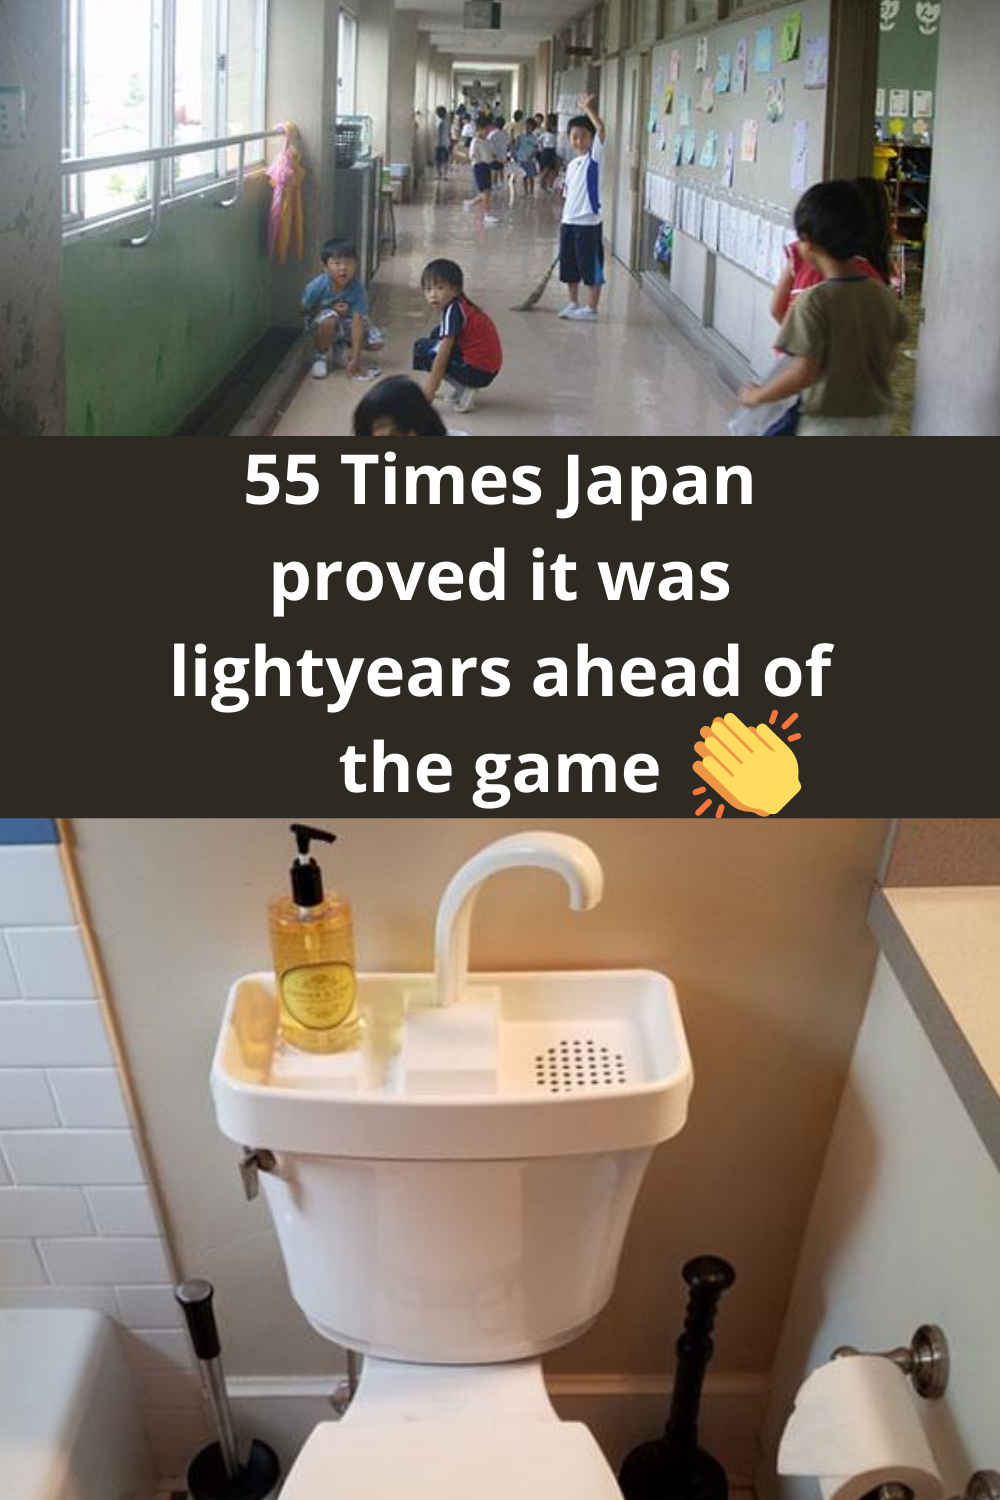 55 Times Japan proved it was lightyears ahead of the game